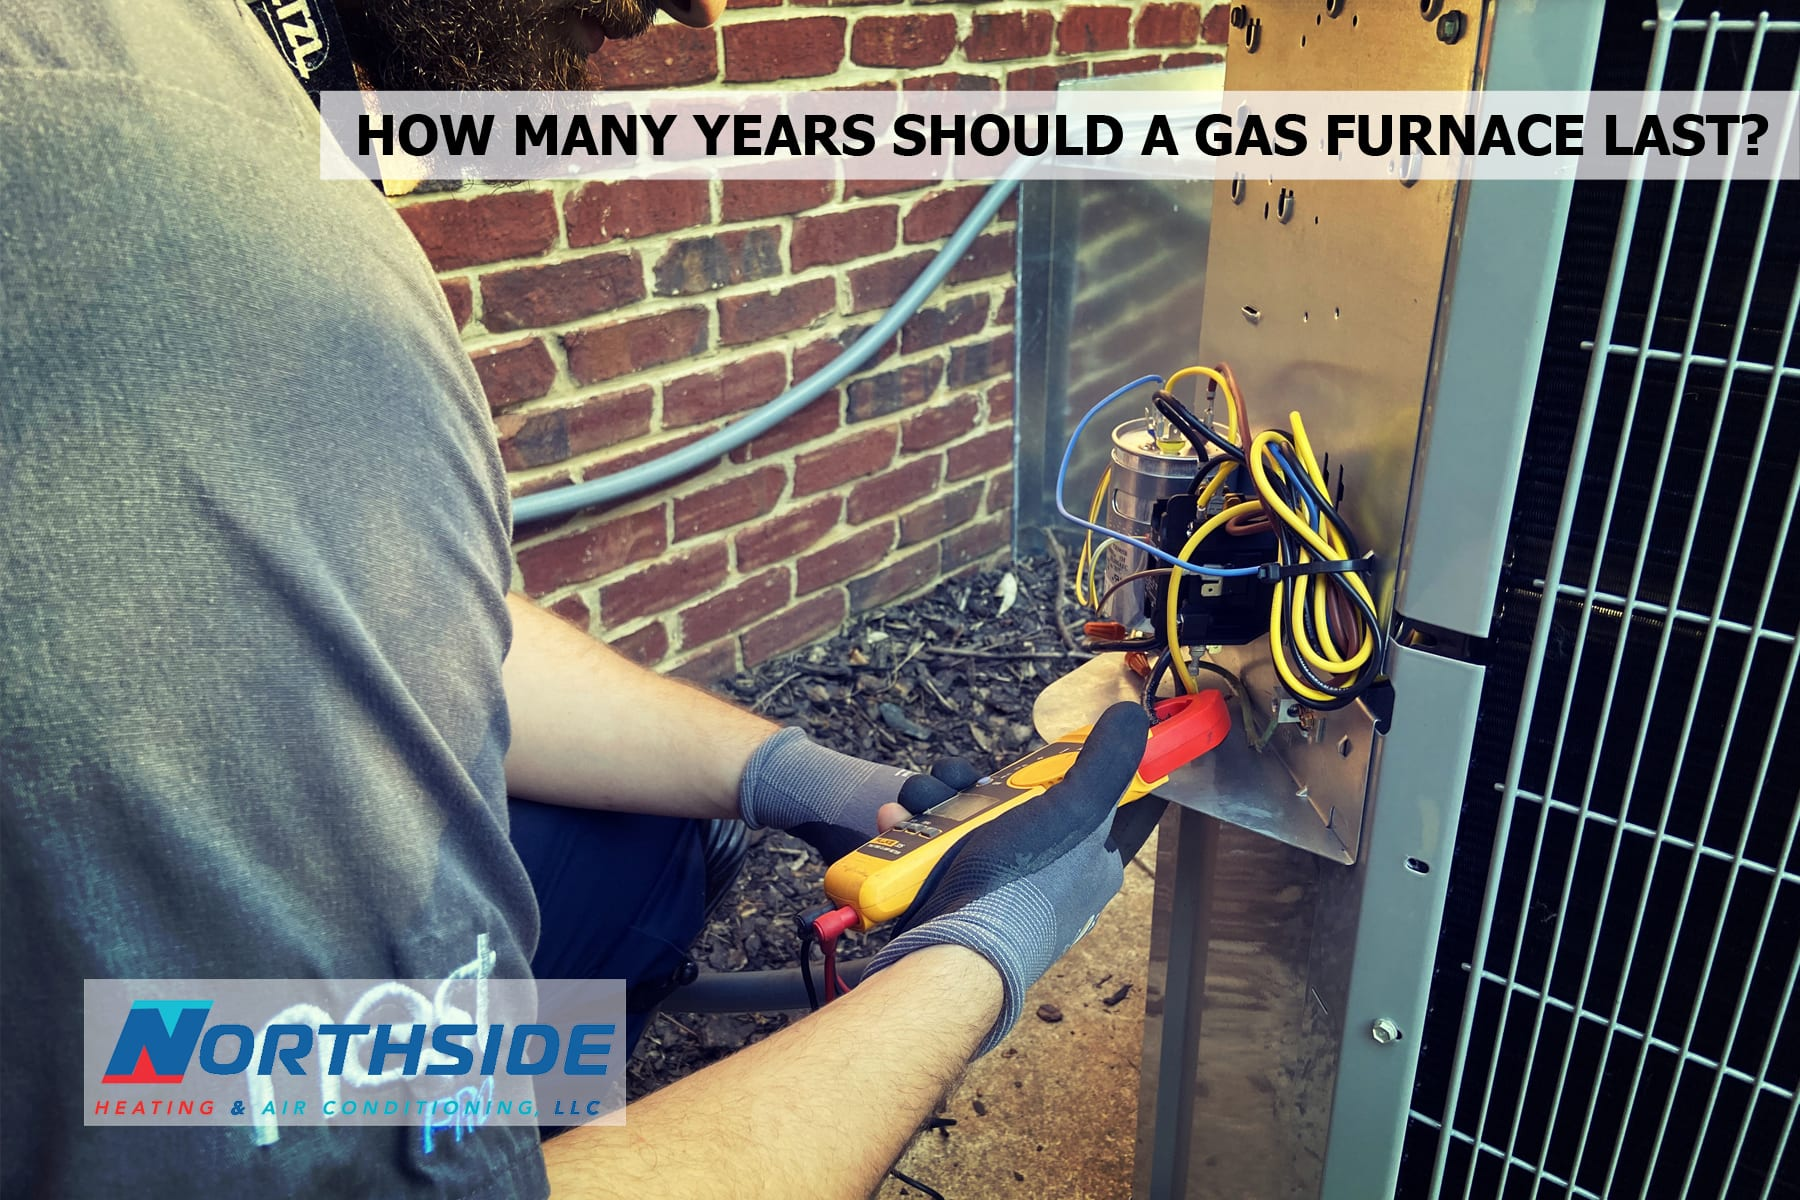 HOW MANY YEARS SHOULD A GAS FURNACE LAST?